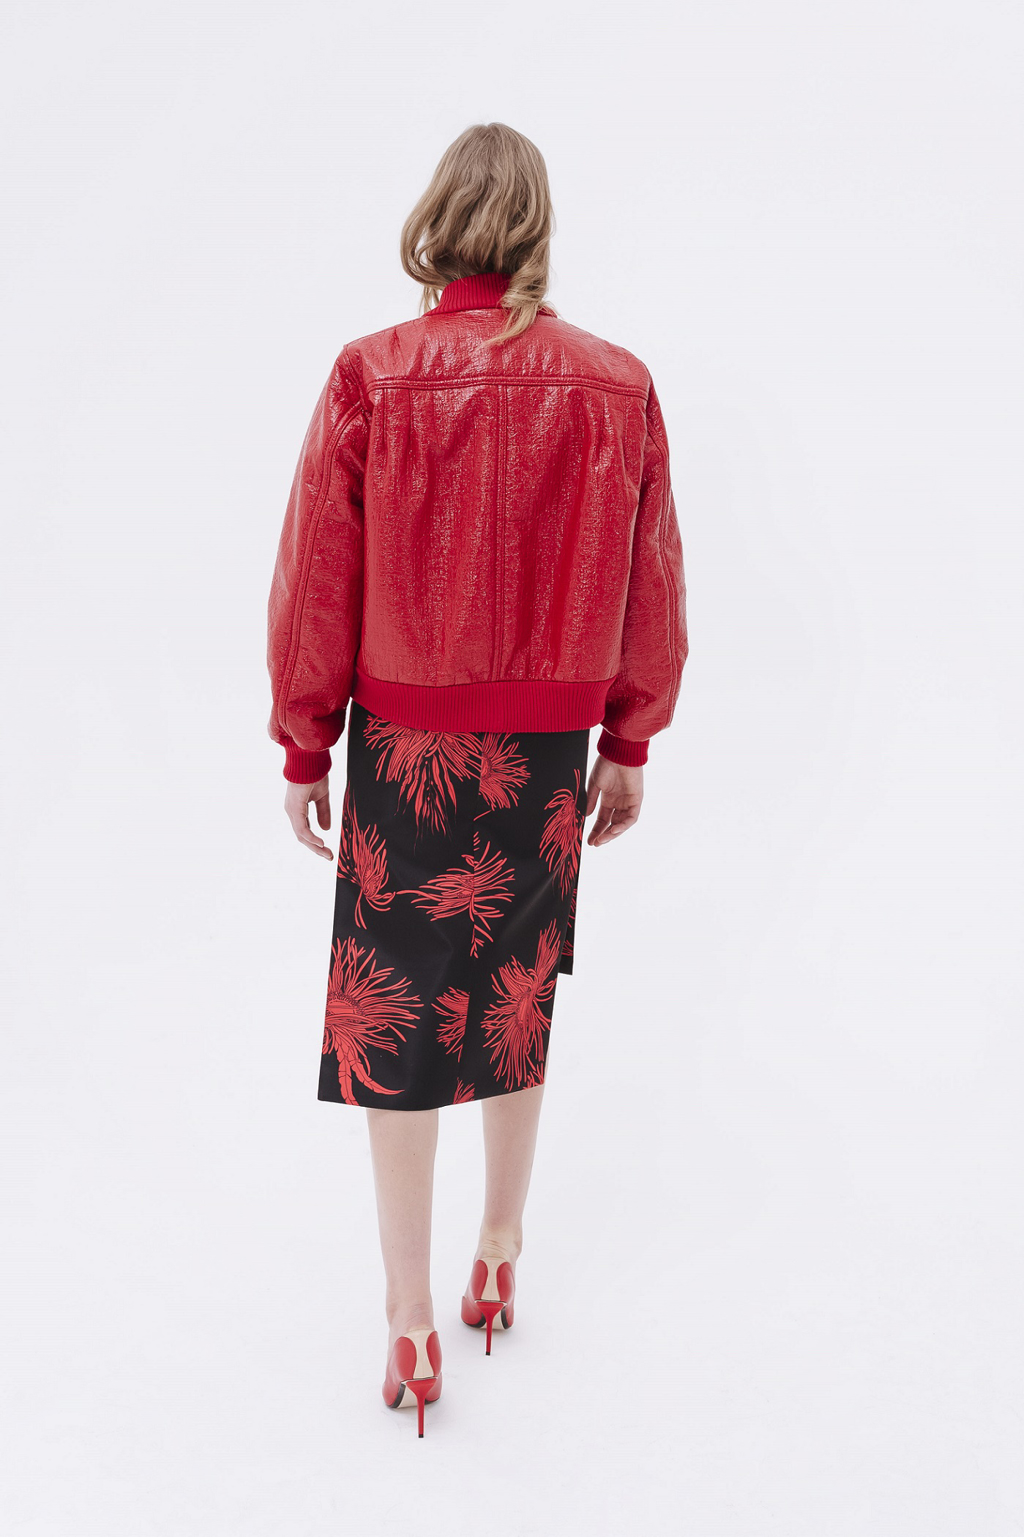 female model with red jacket and black&red flower printed pencil skirt